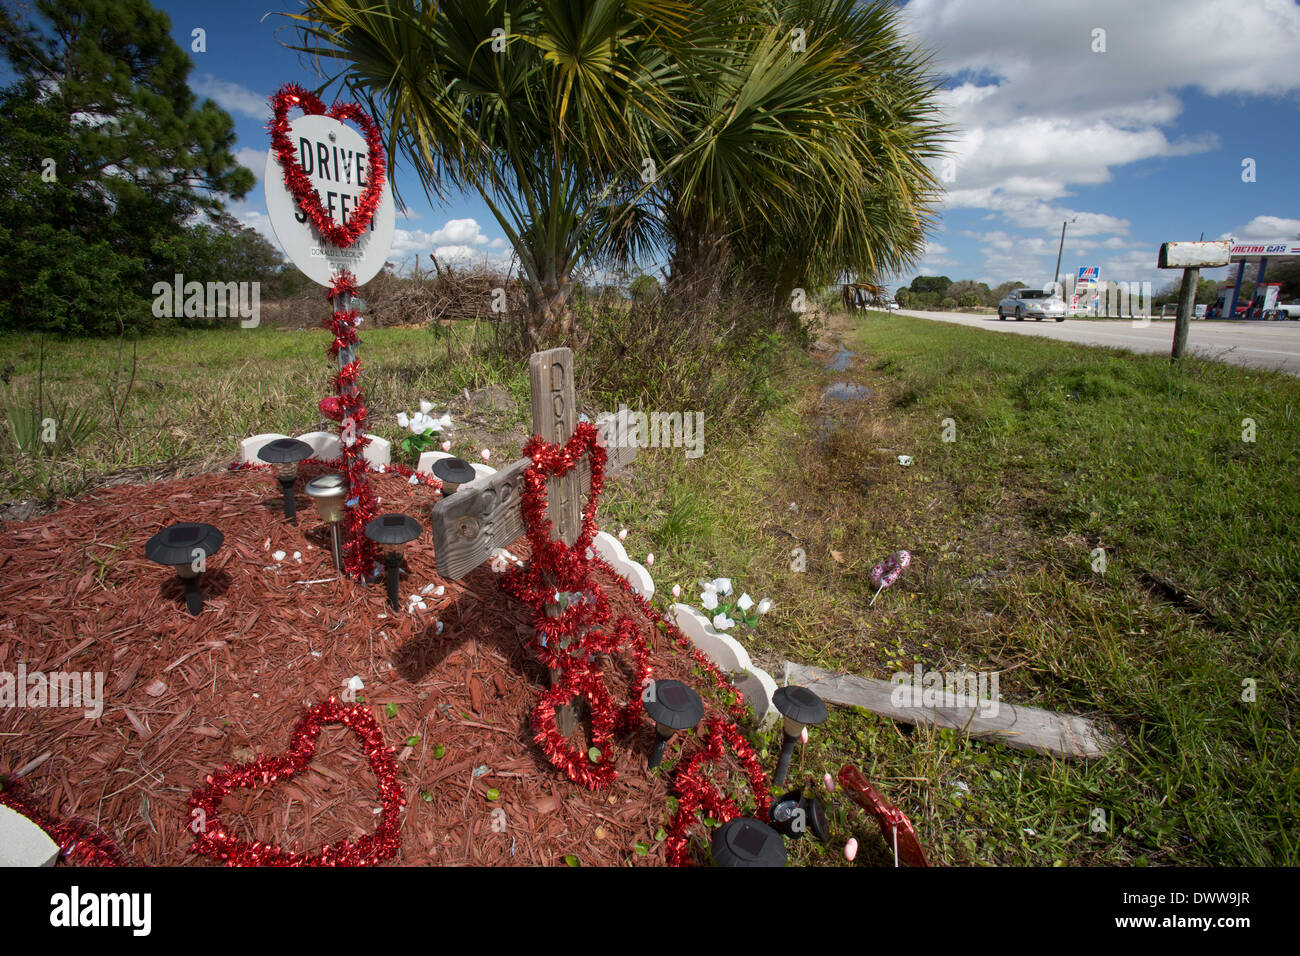 Cypress Quarters, Florida - A roadside memorial for the victim of a traffic accident. - Stock Image